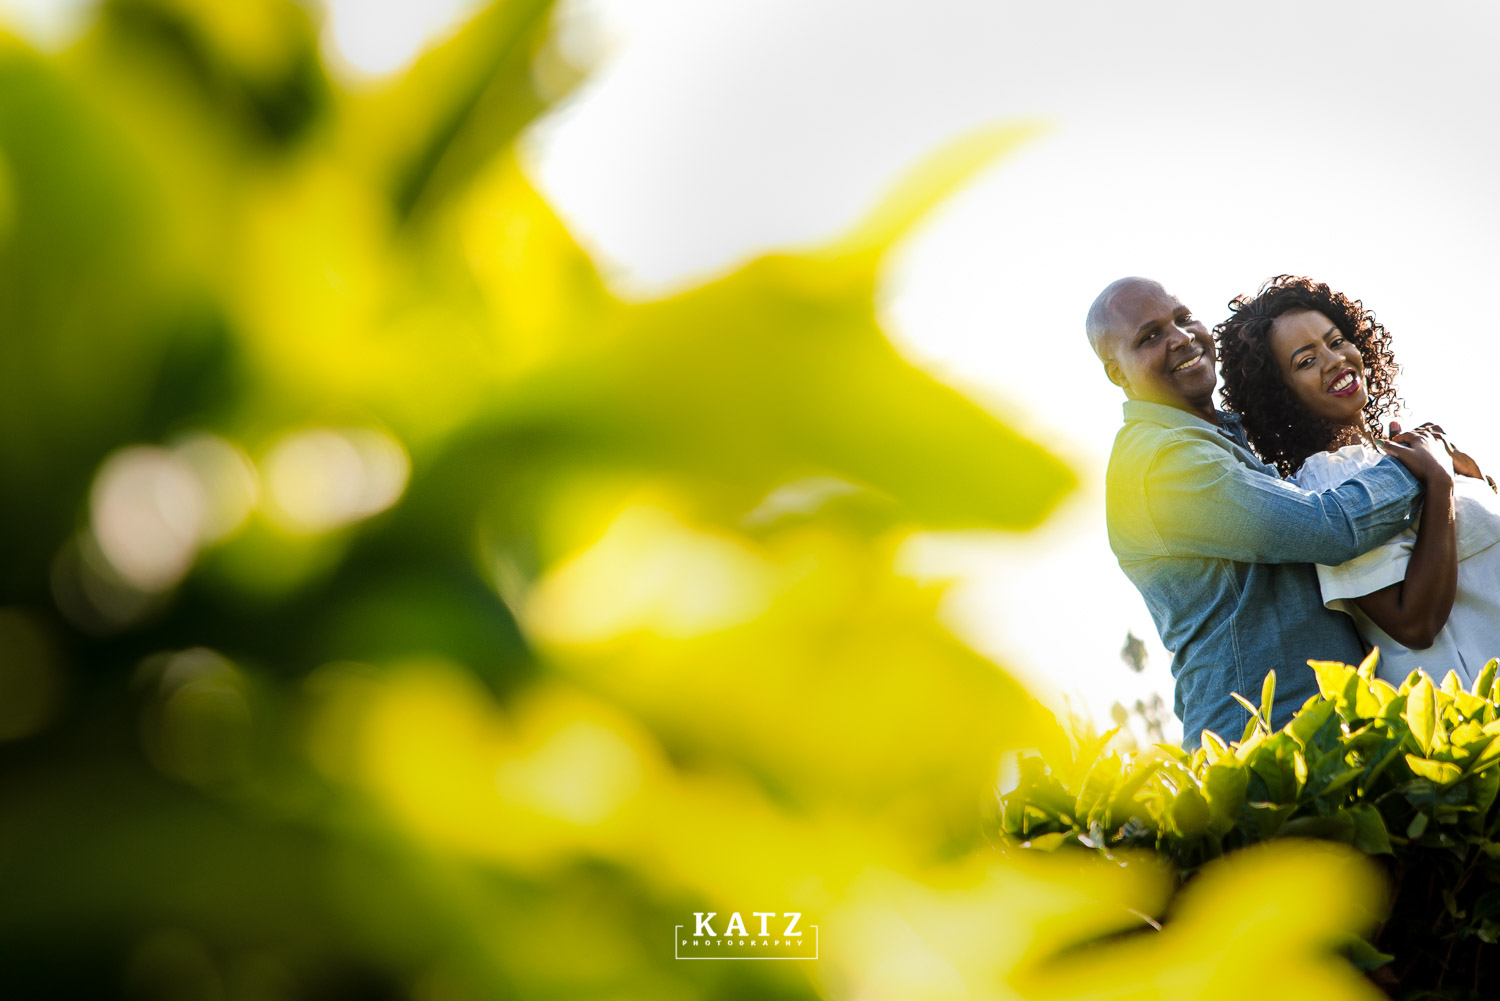 Katz Photographer Engagement Kenyan Wedding Photographer Kenyan Engagement Photographer Nairobi Wedding Photographer 1